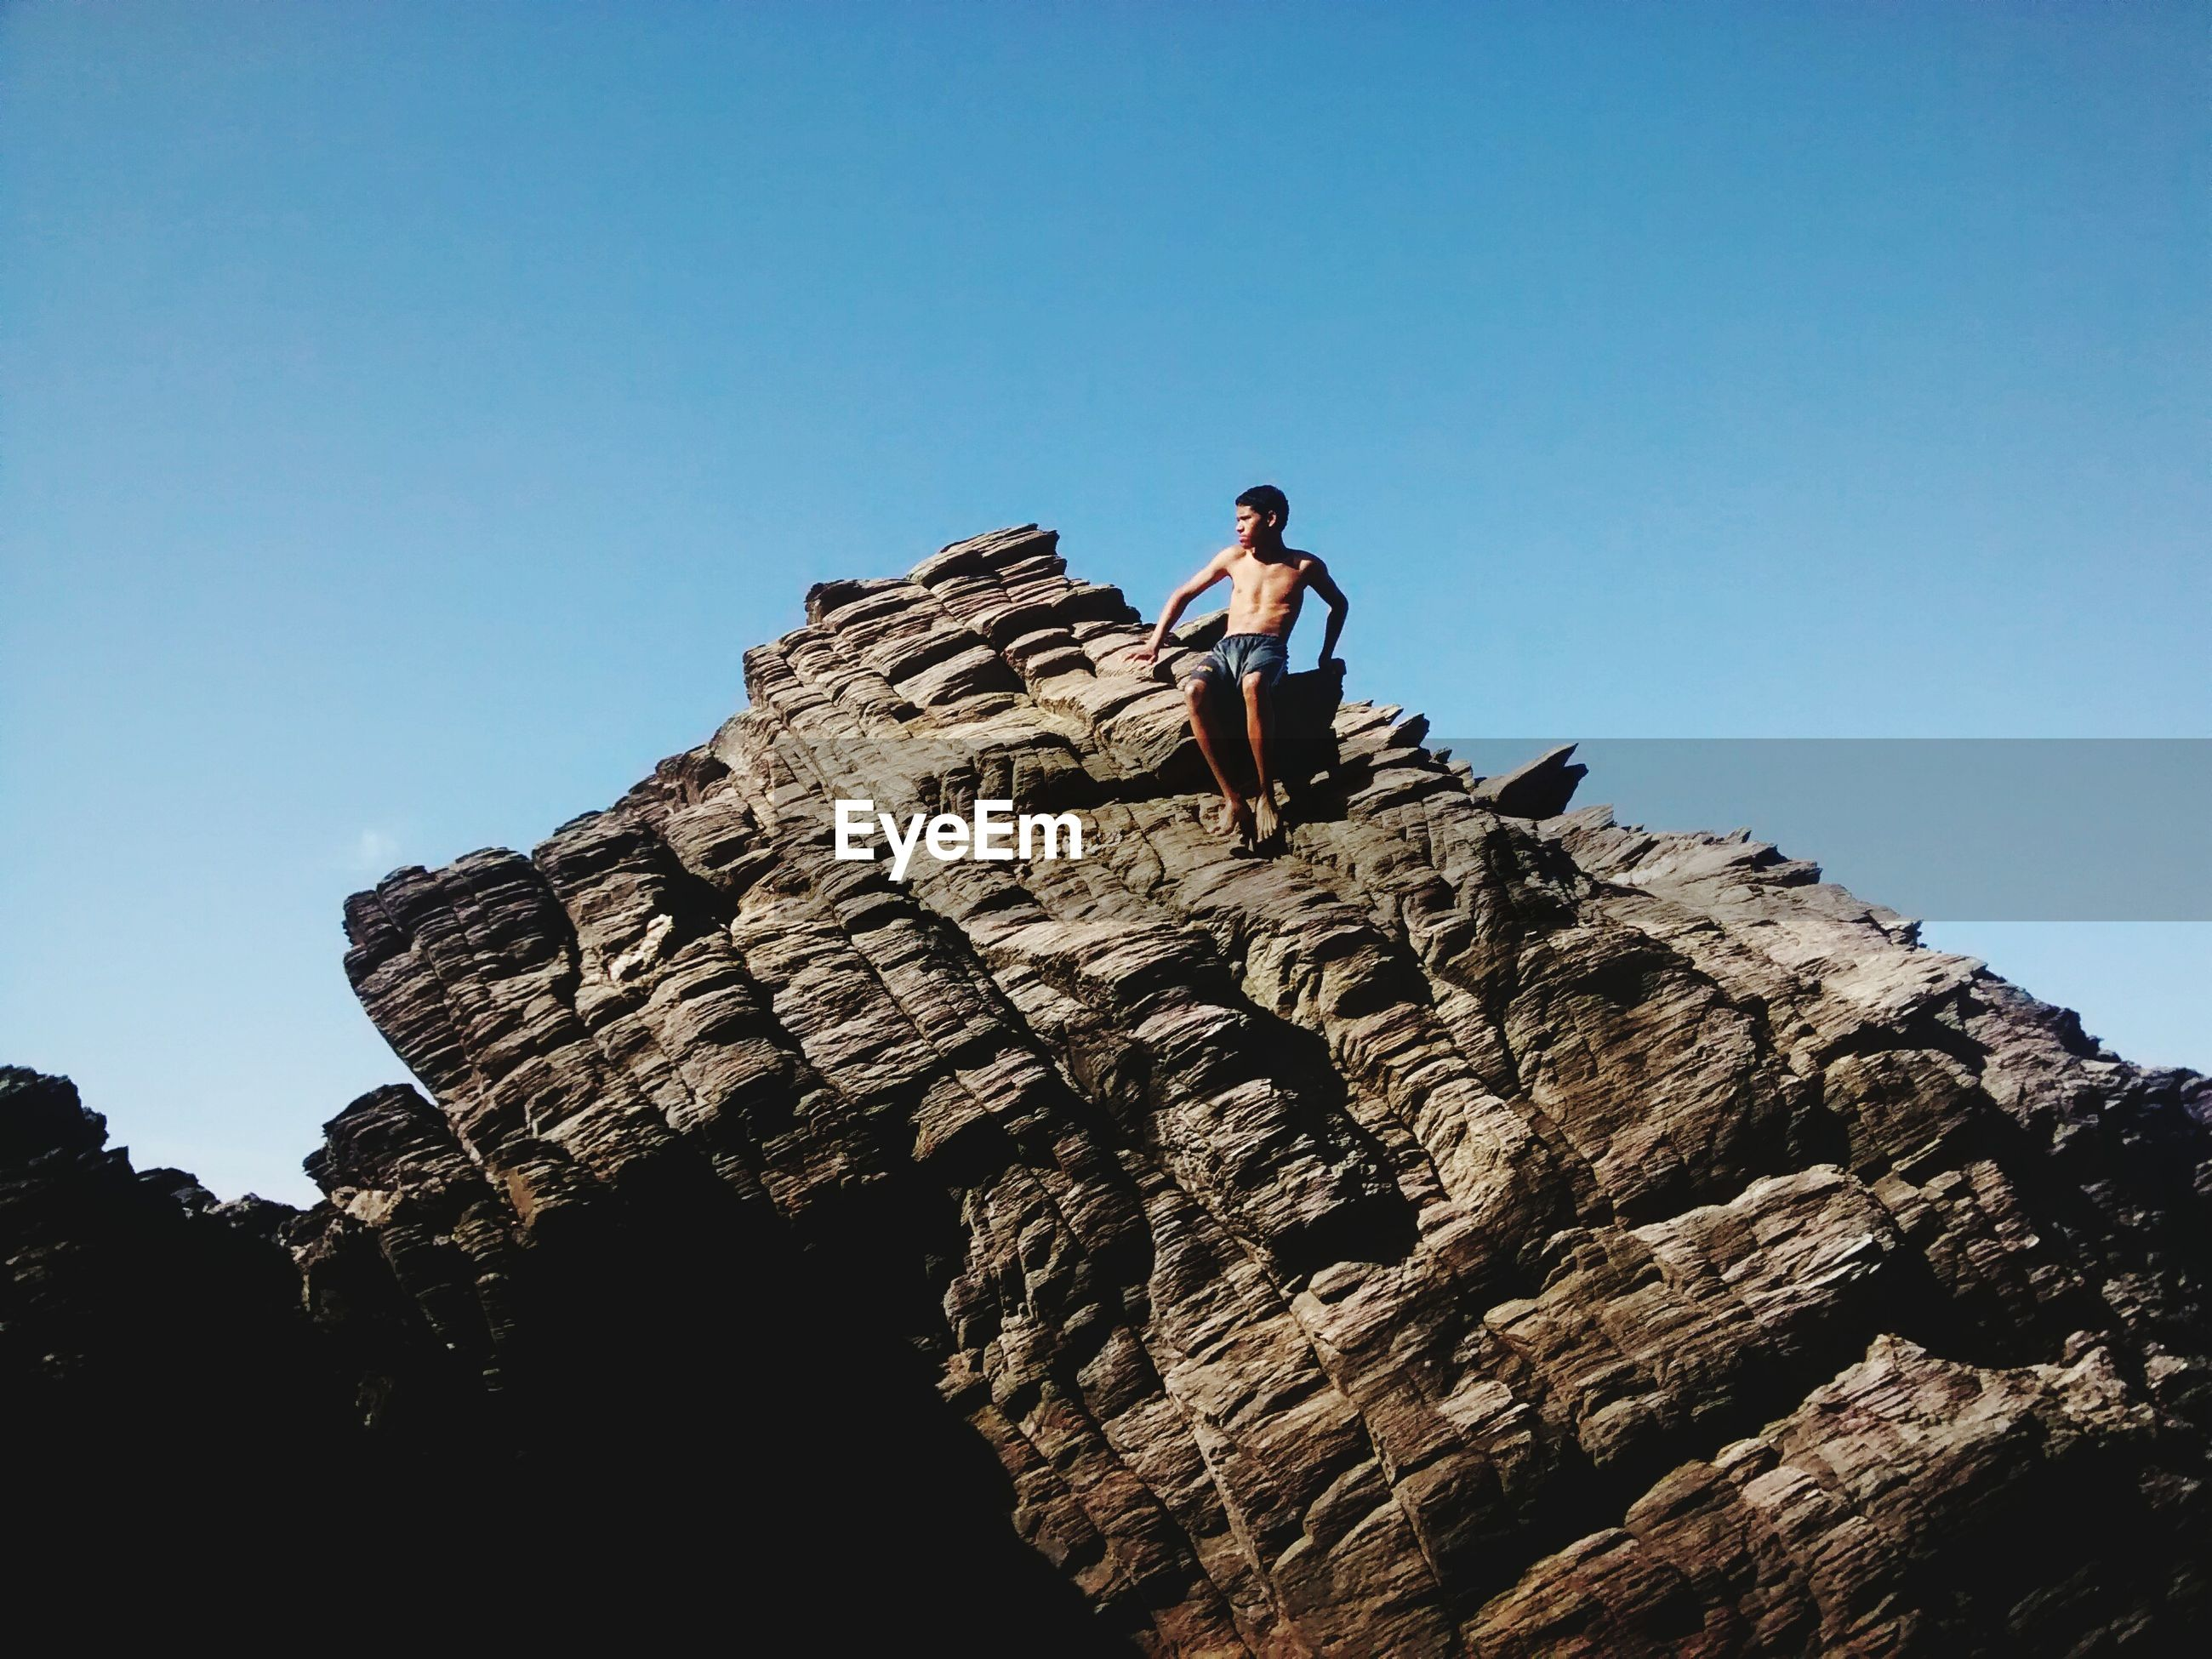 Low angle view of shirtless boy sitting on rock formation against clear blue sky